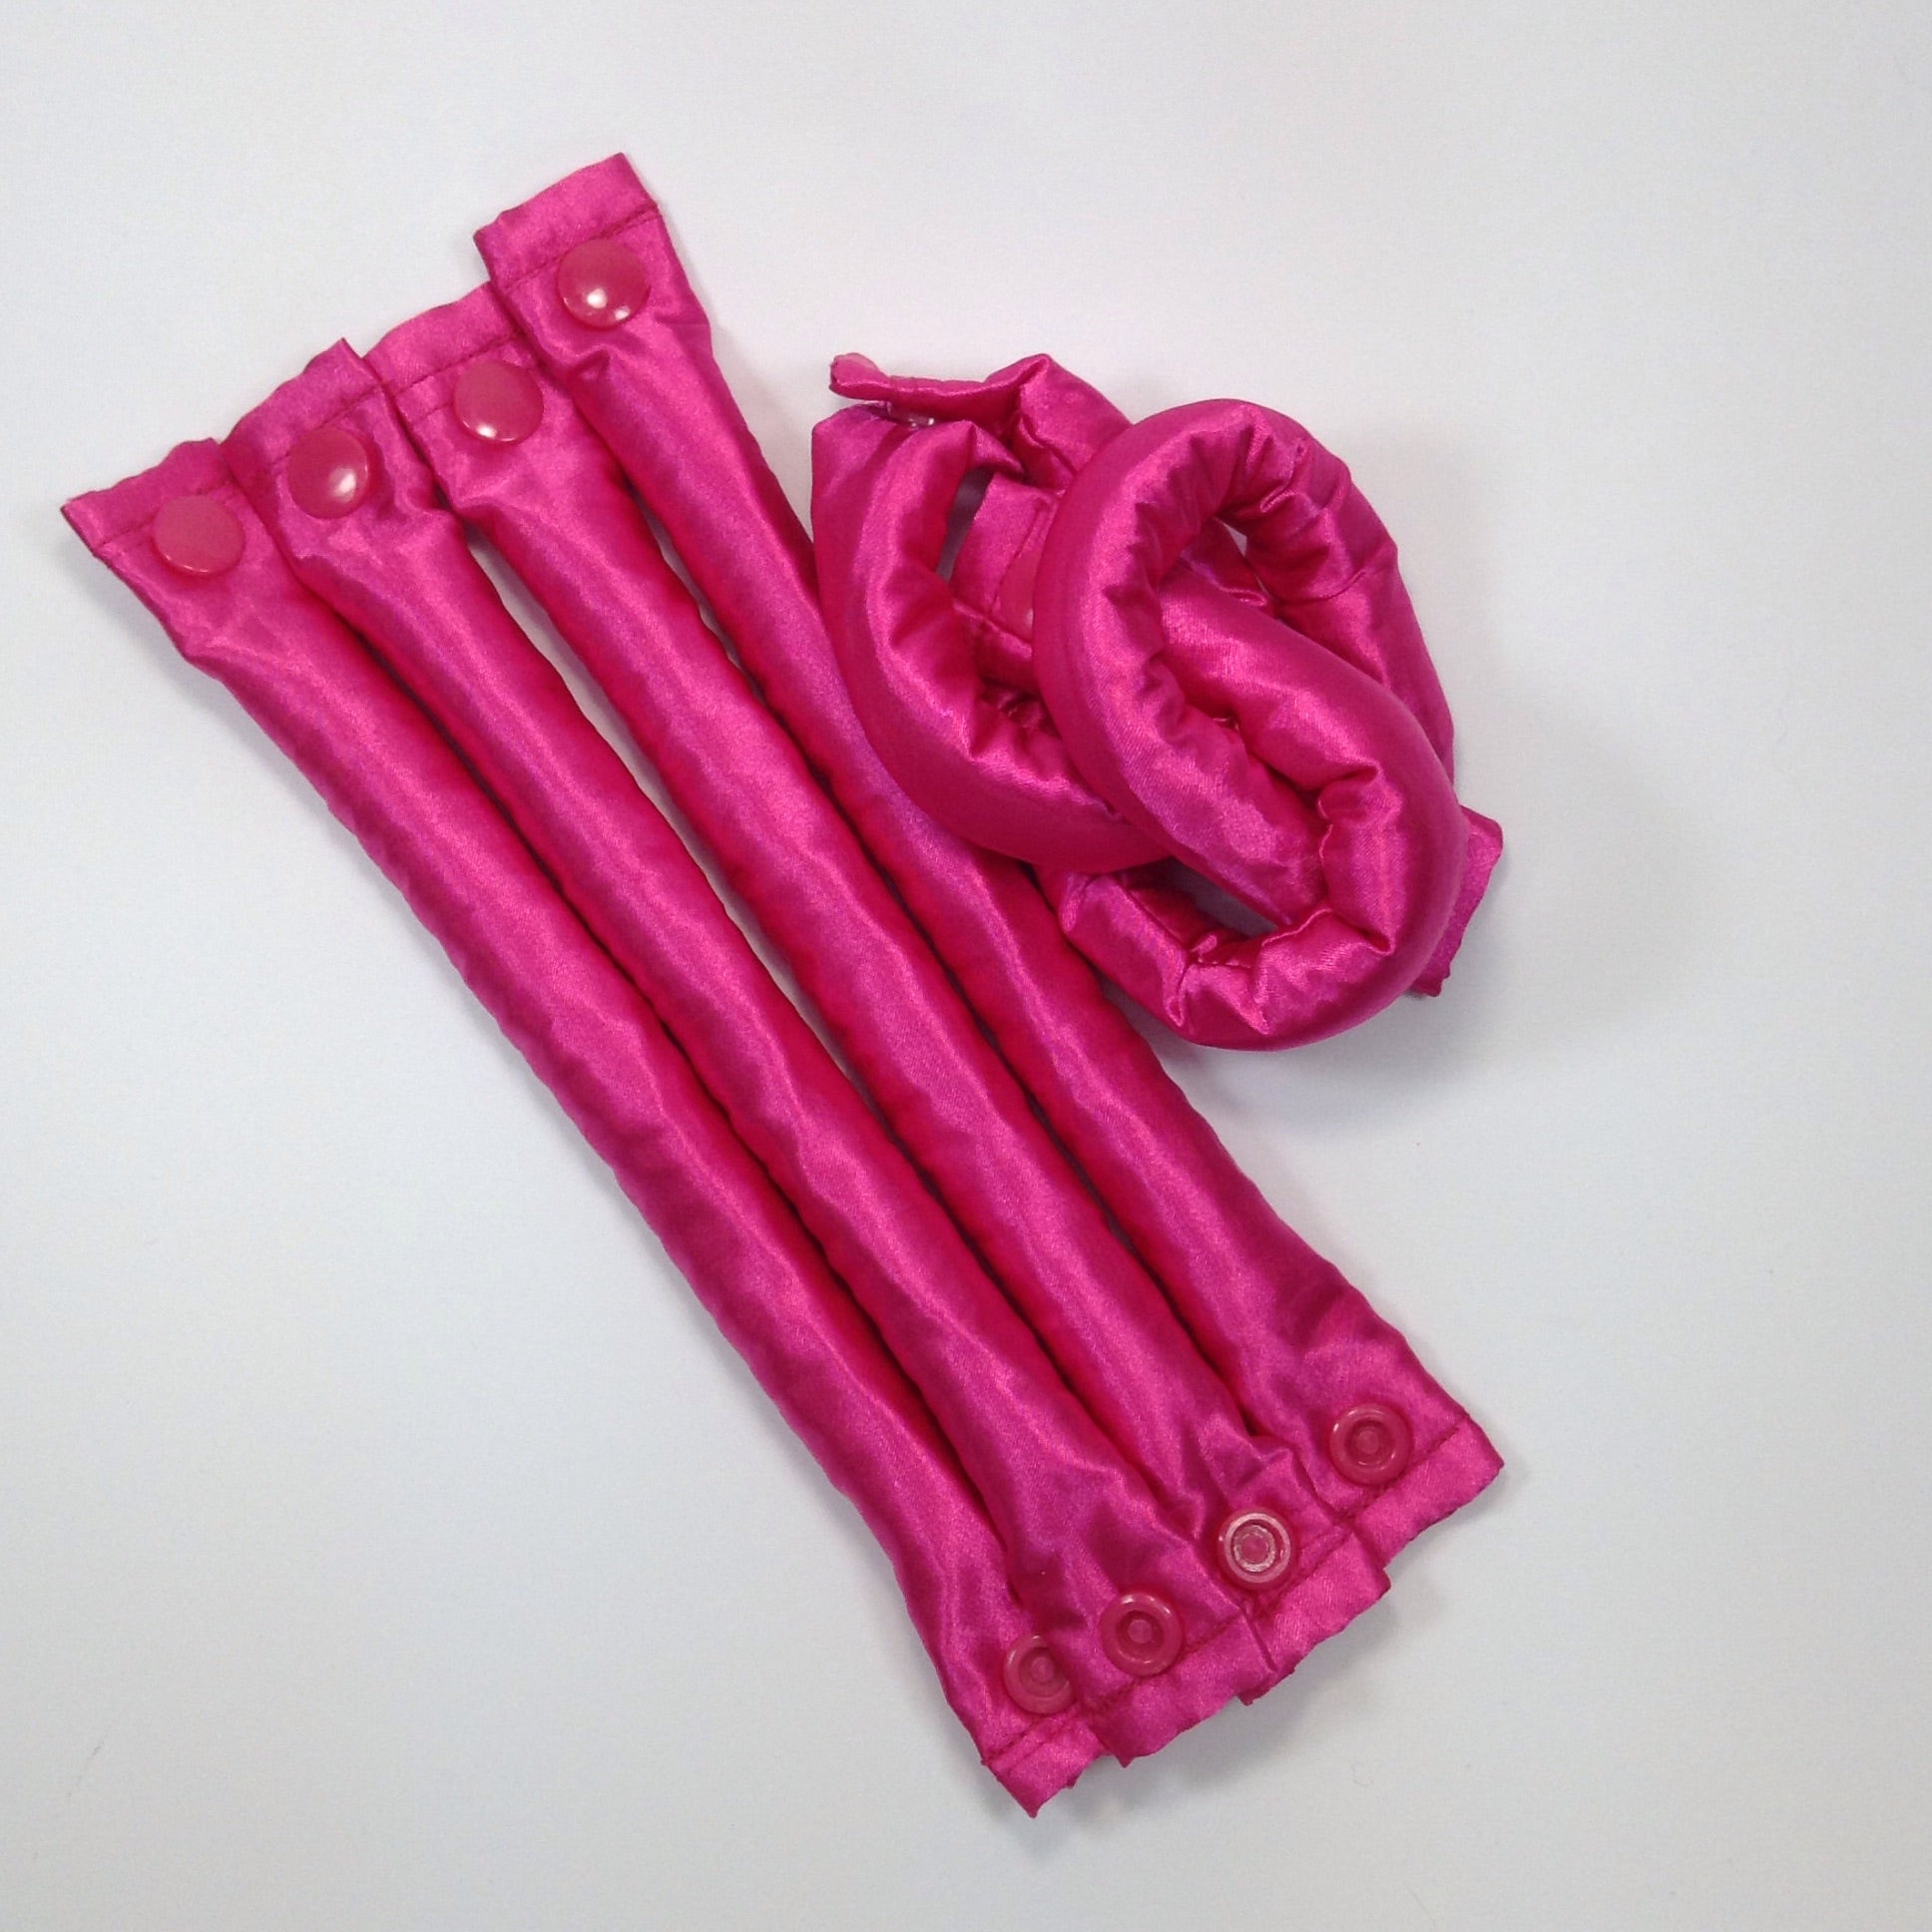 Bold Pink fabric hair rollers - Curlers - Hair Accessories set - My Easy Curls